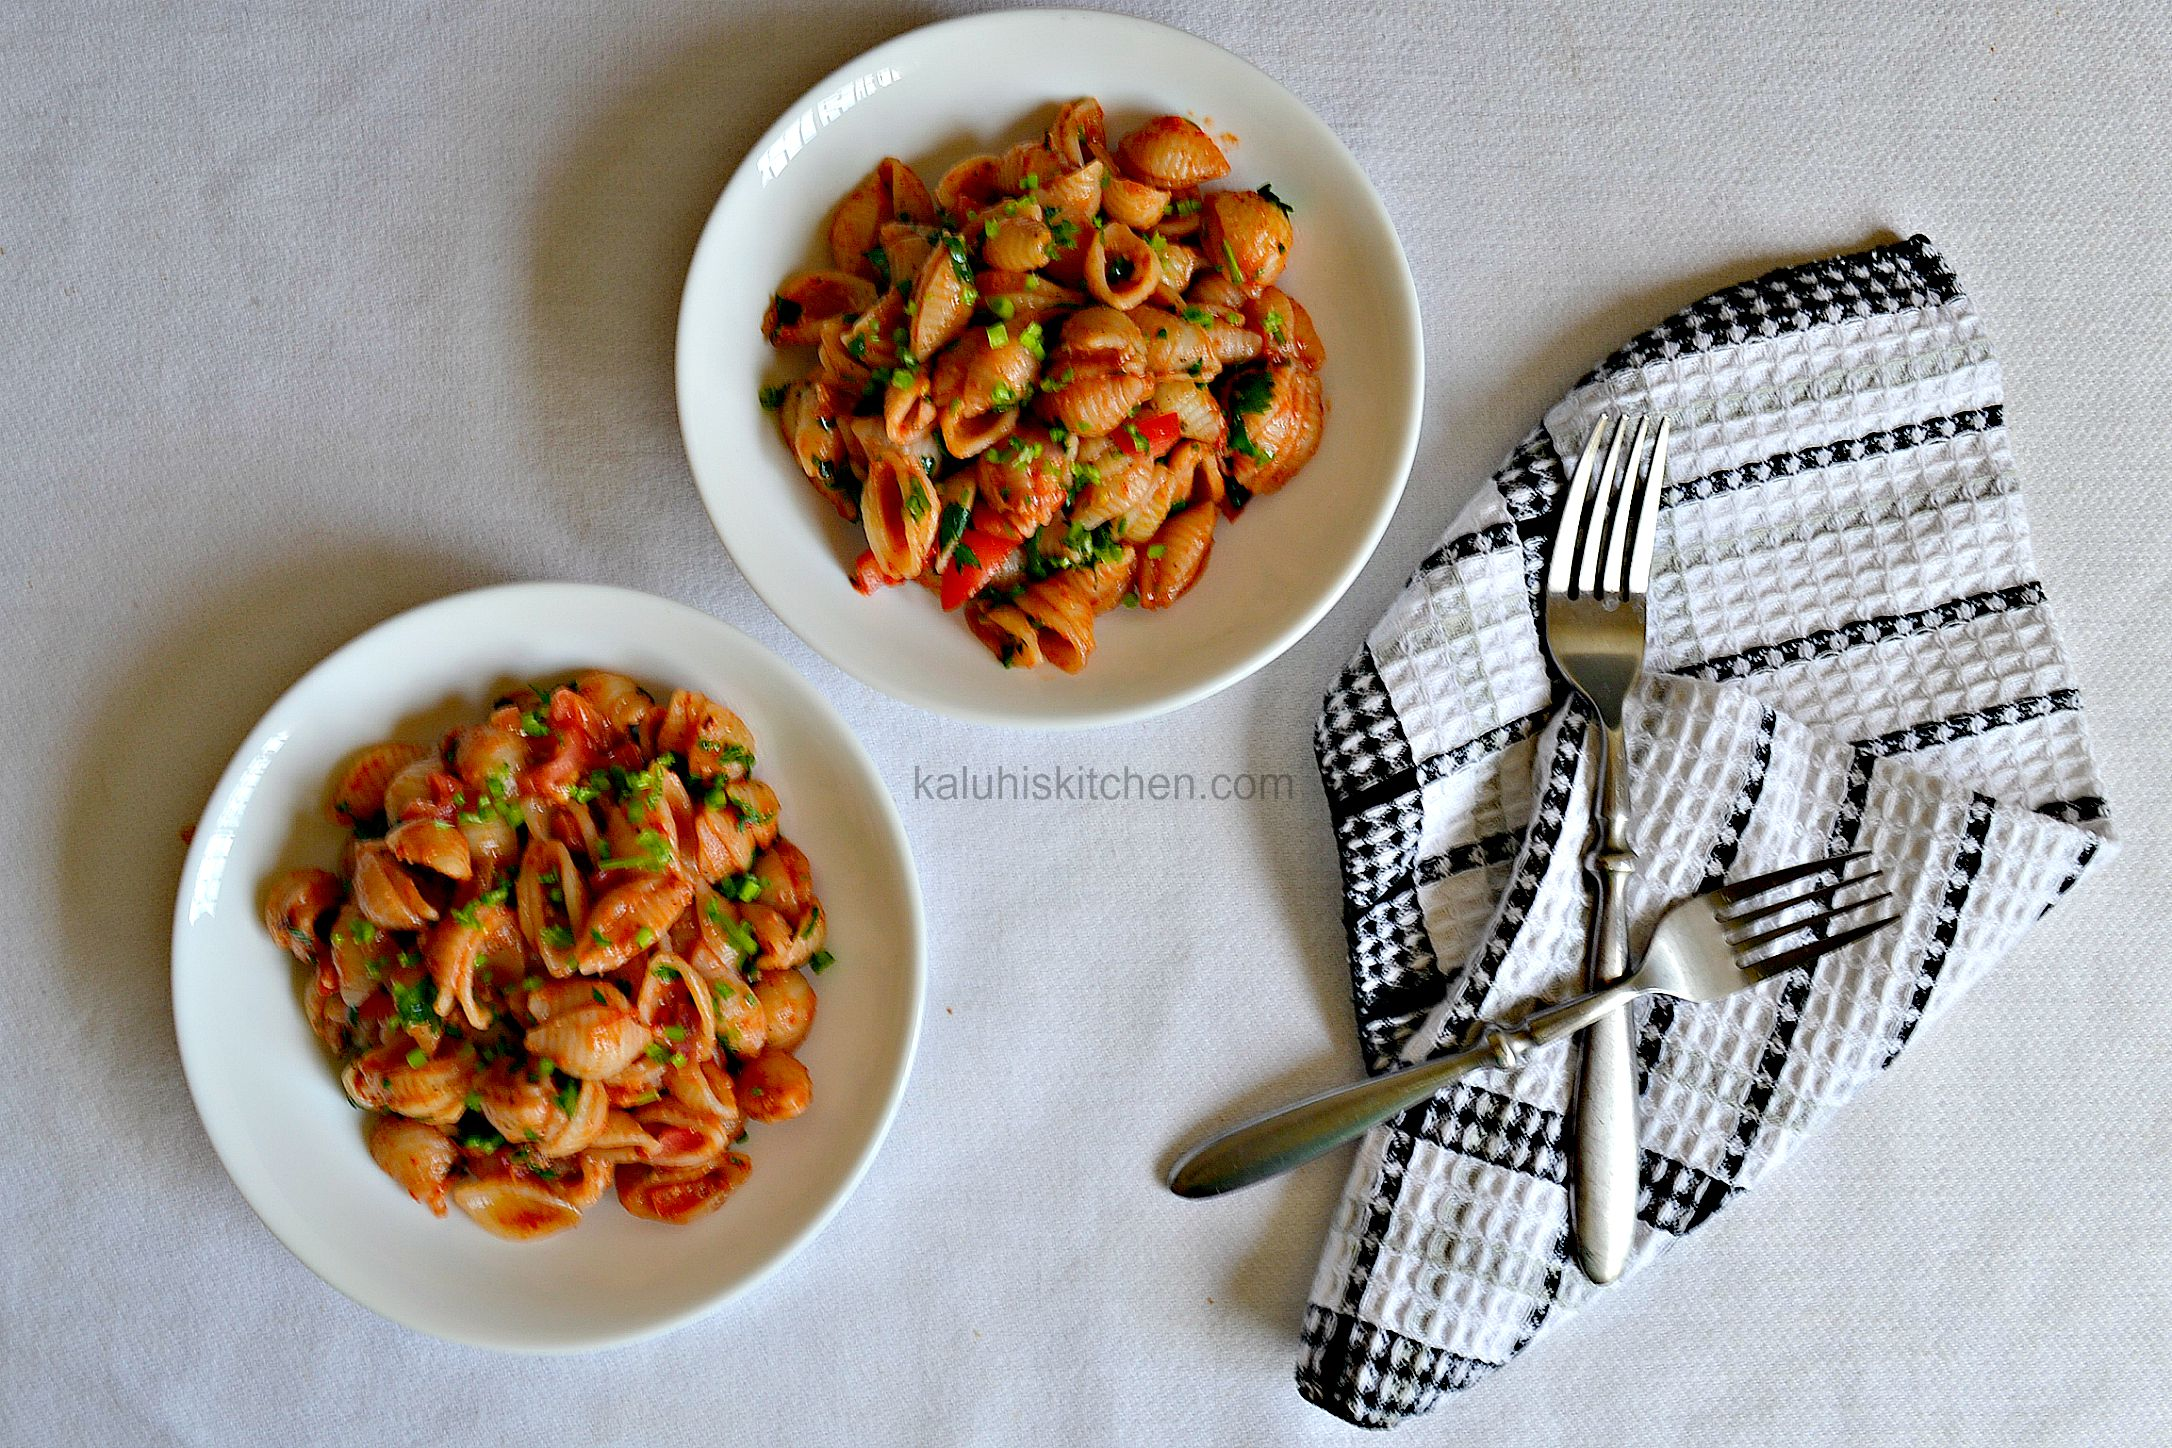 kenyan food bloggers_red wine and tomato cheesy pasta_kaluhiskitchen.com by kaluhi adagala